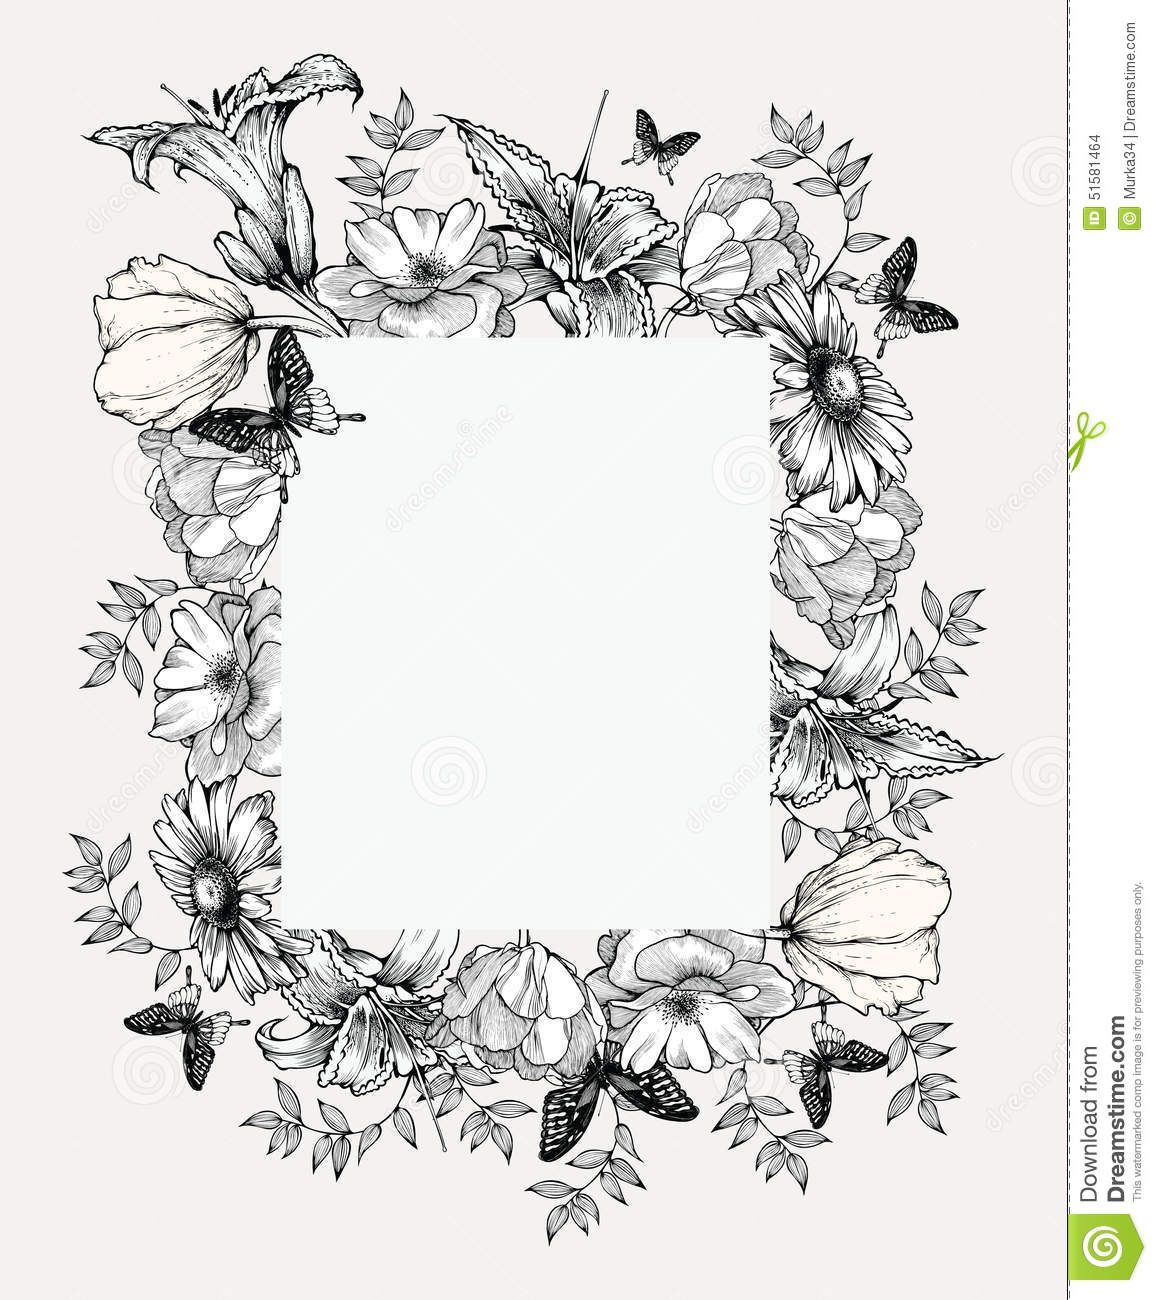 Black And White Vector Illustration Vintage Frame With Flowers